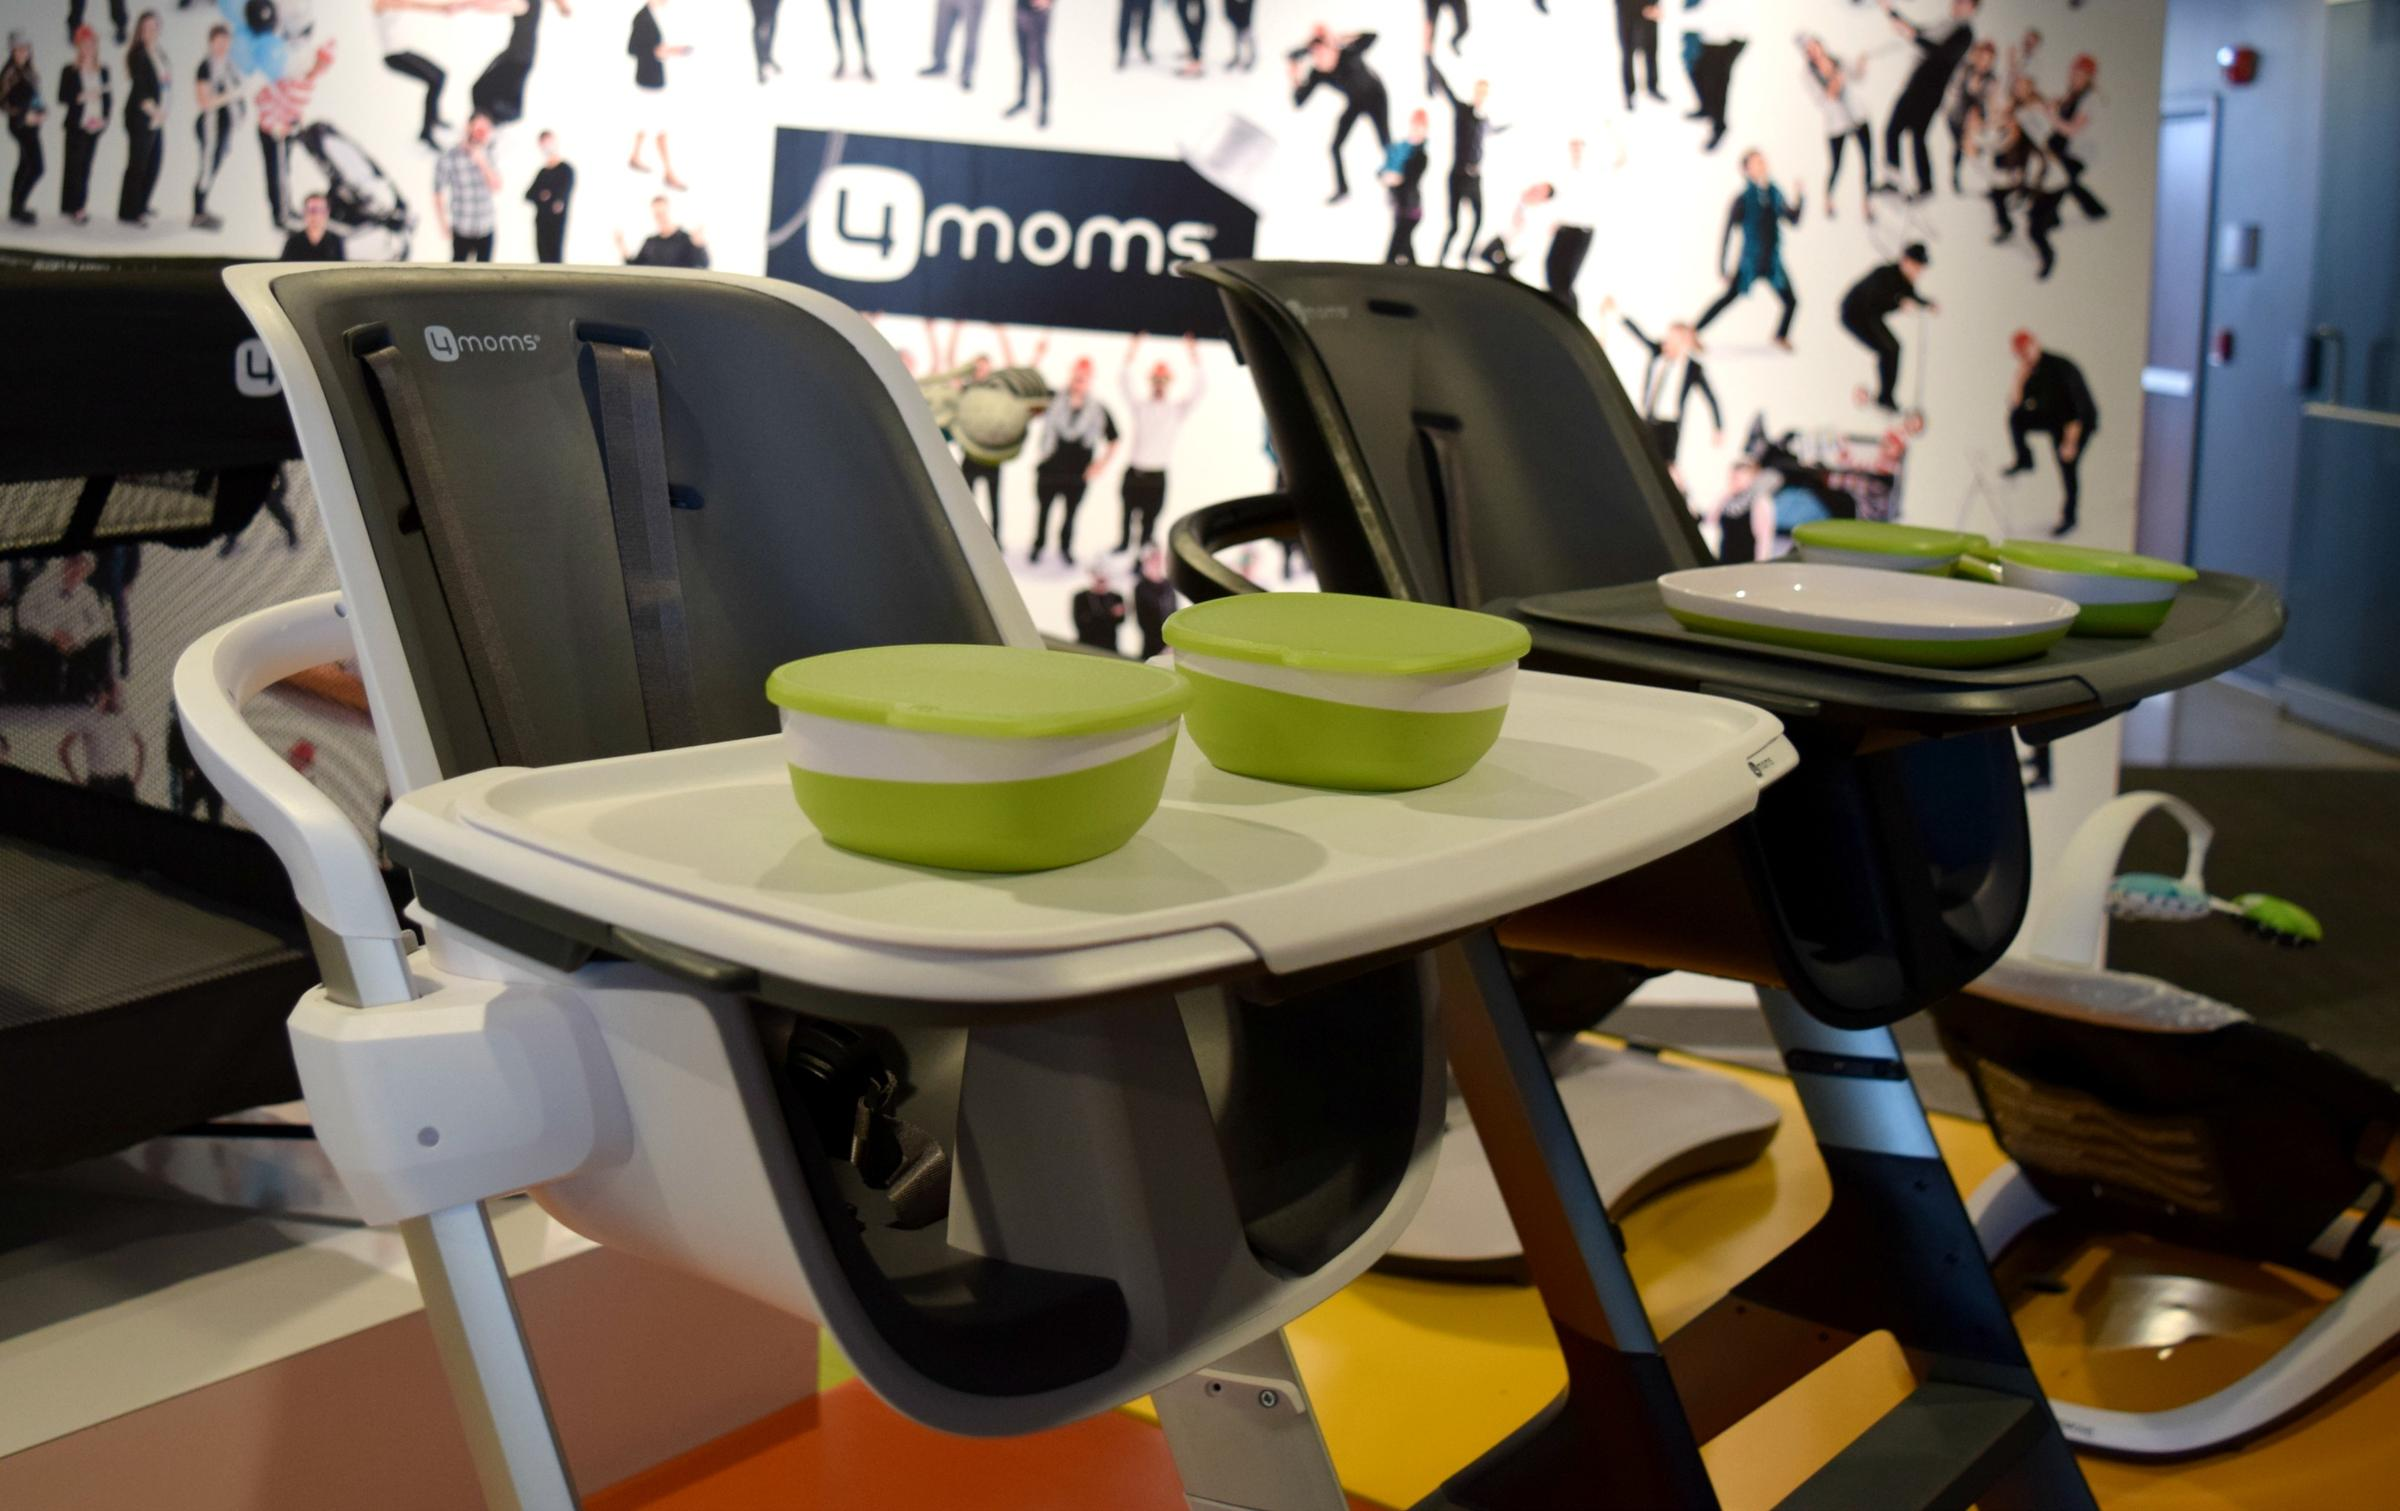 4 Moms High Chair 4moms 39 Robotic Car Seat Aims To Improve Safety